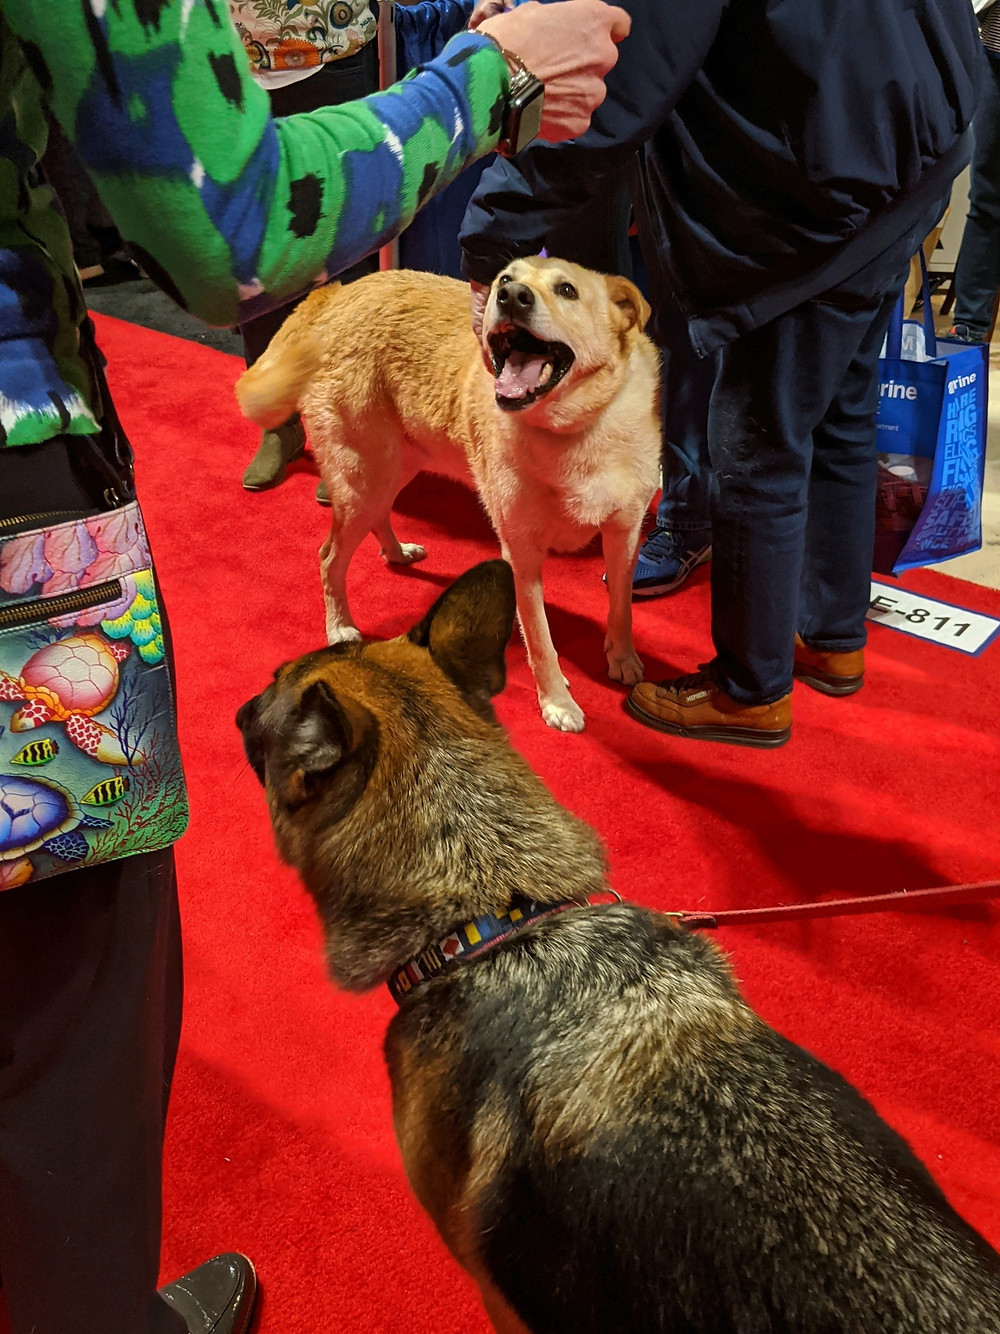 Buddy, golden color Husky Shepard mix at boat show walking on red carpet